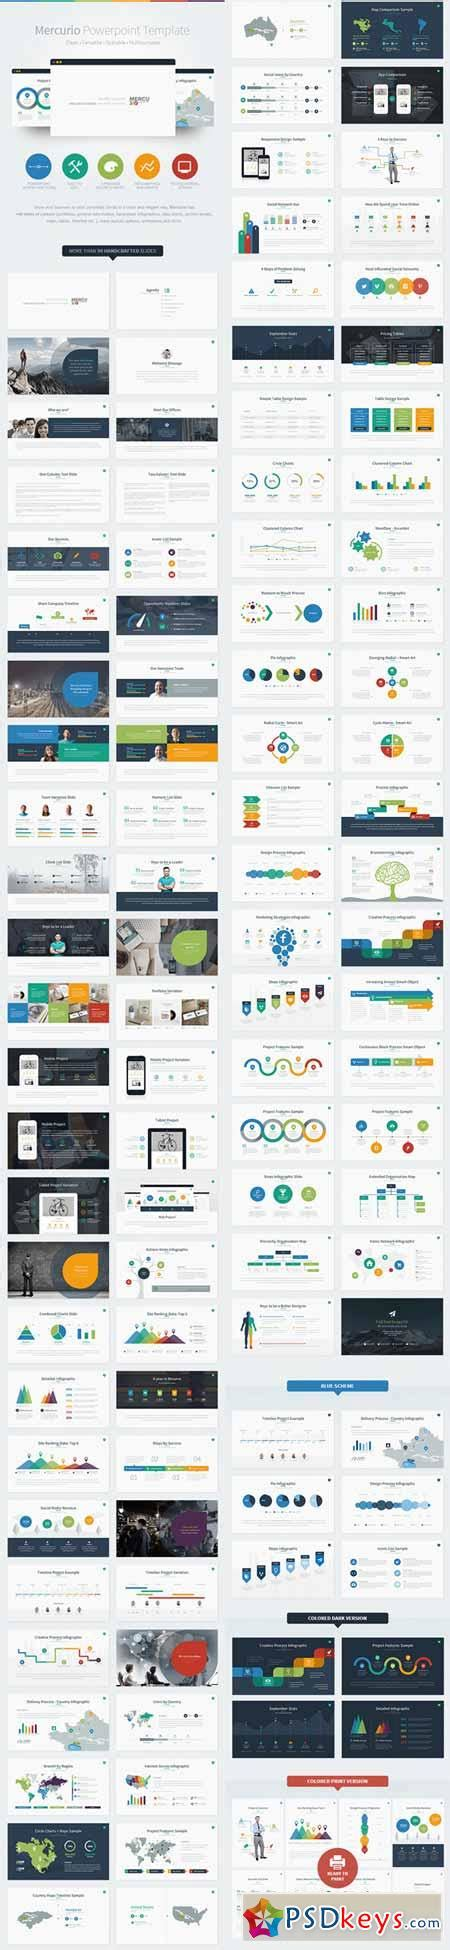 Mercurio Powerpoint Presentation Template 8527176 187 Free Download Photoshop Vector Stock Image Powerpoint Templates Torrent